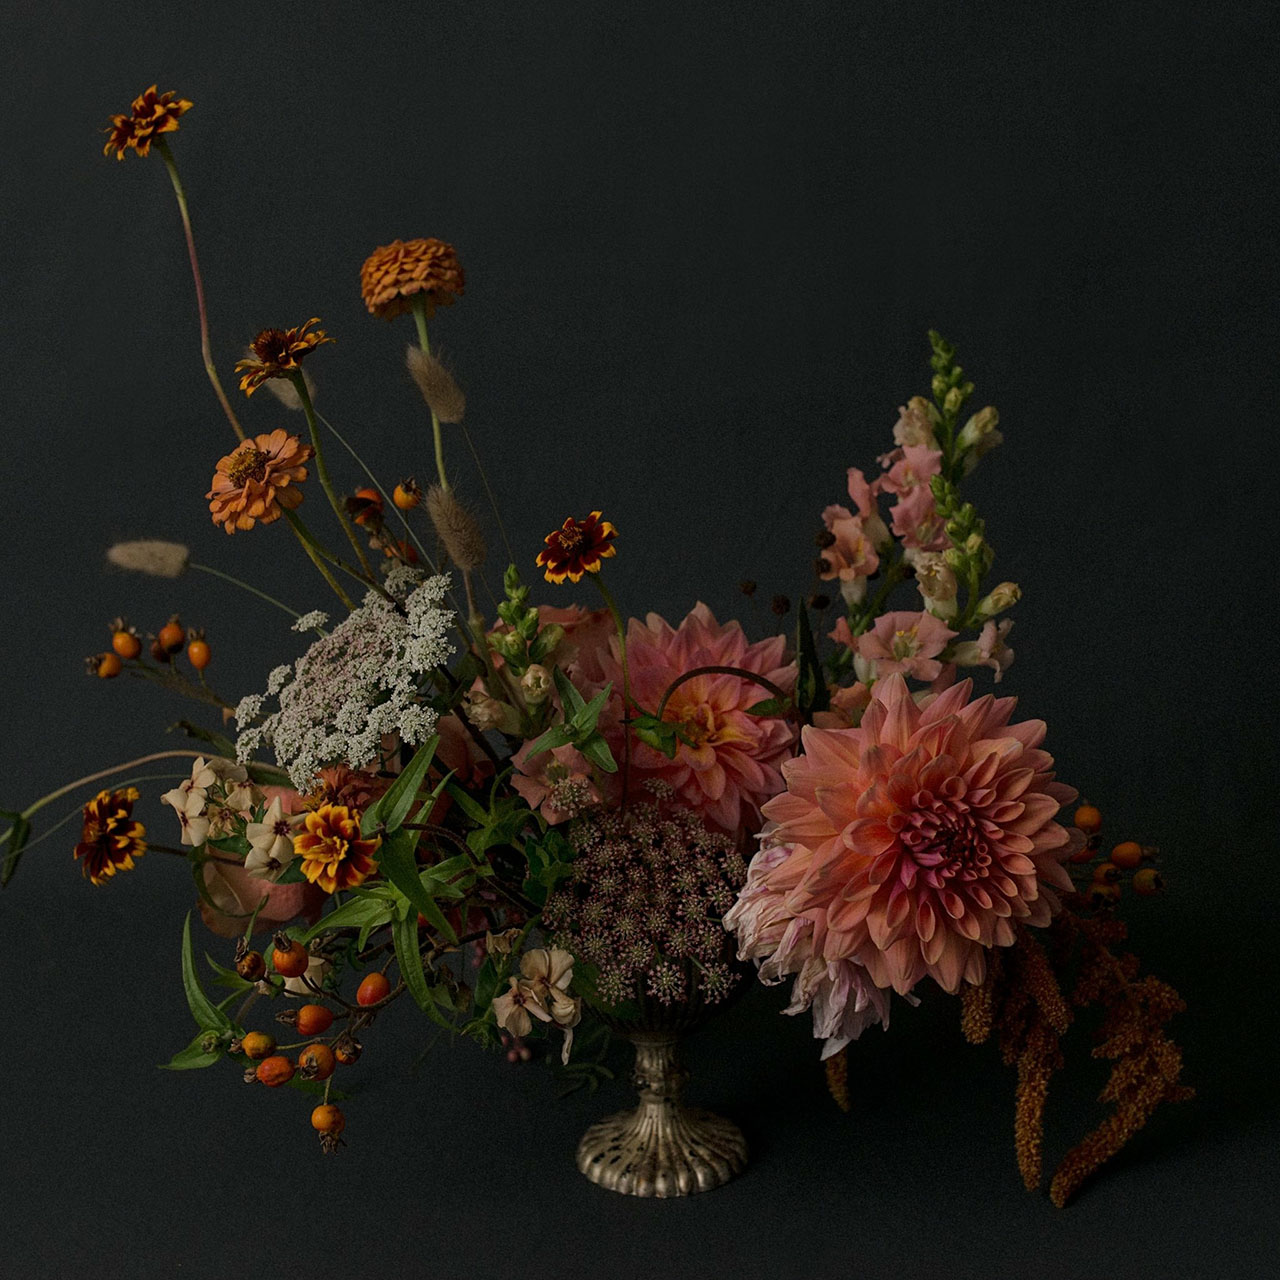 We love Eriko's use of cooler tones for her floral arrangements - a surprising twist to conventional standards of what constitutes as a beautiful floral arrangement.